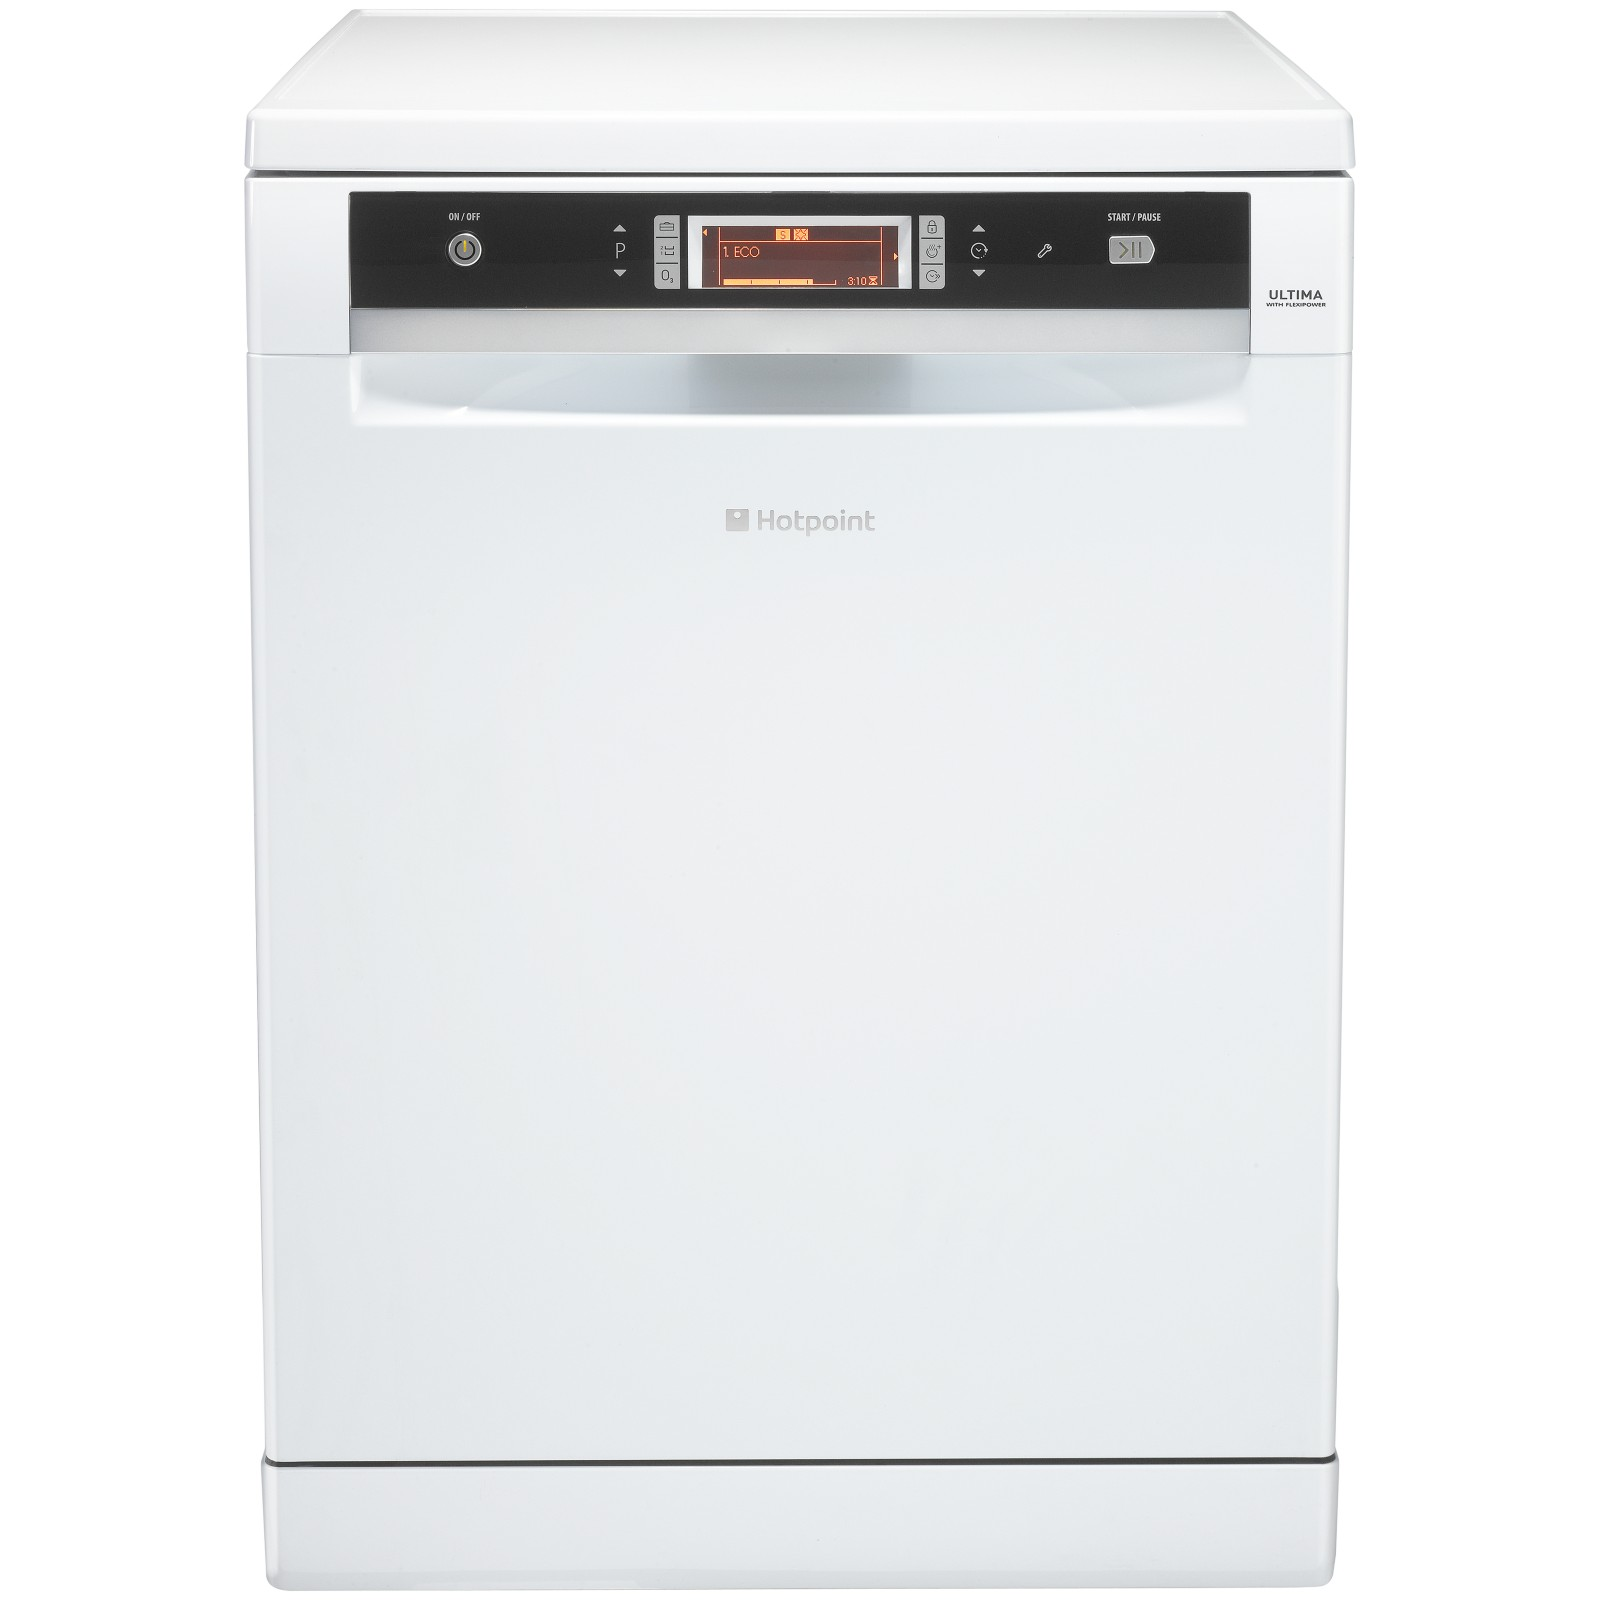 Hotpoint Ultima FDUD51110P Freestanding Dishwasher